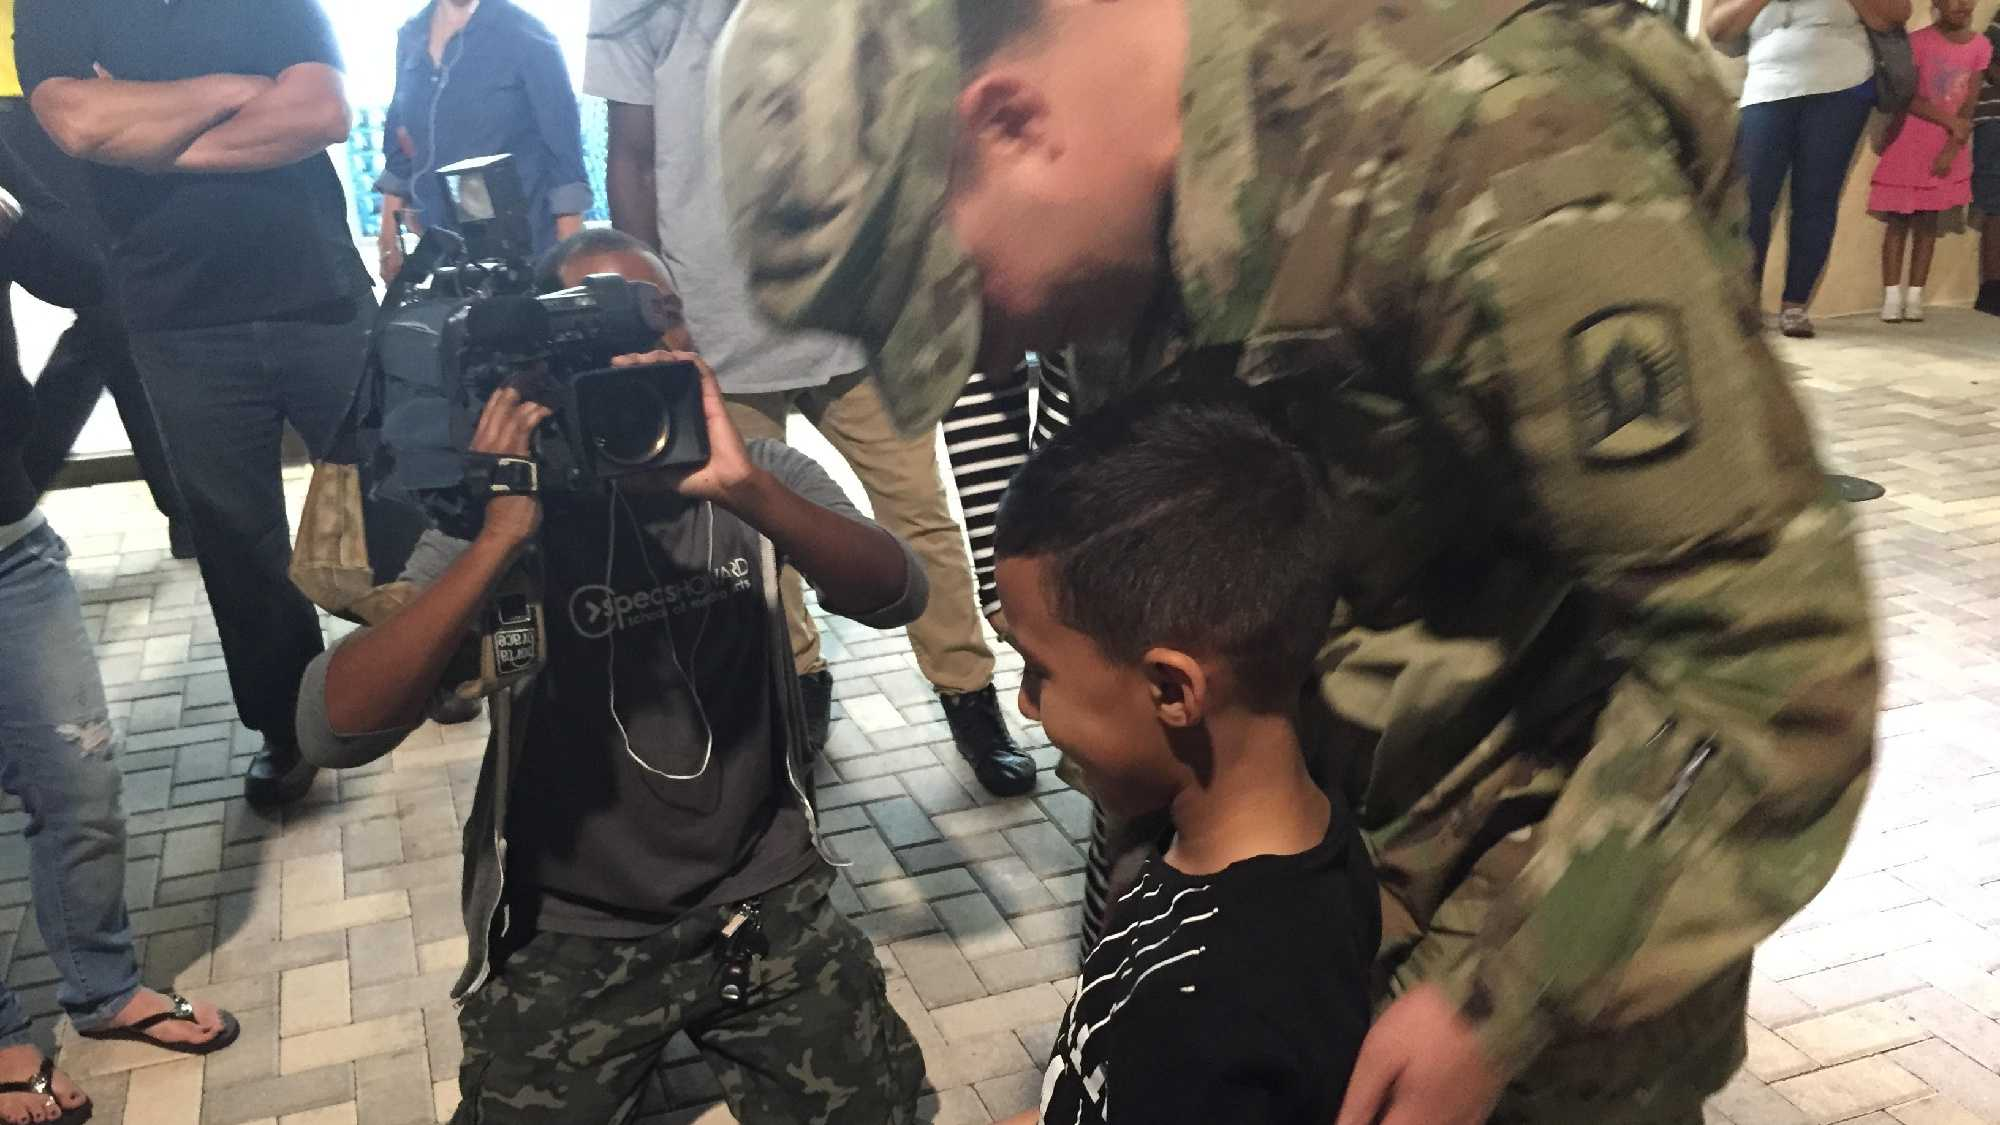 Staff Sgt. Steven Perez of the Florida Army National Guard returned home to his wife, son and stepdaughter Thursday night.